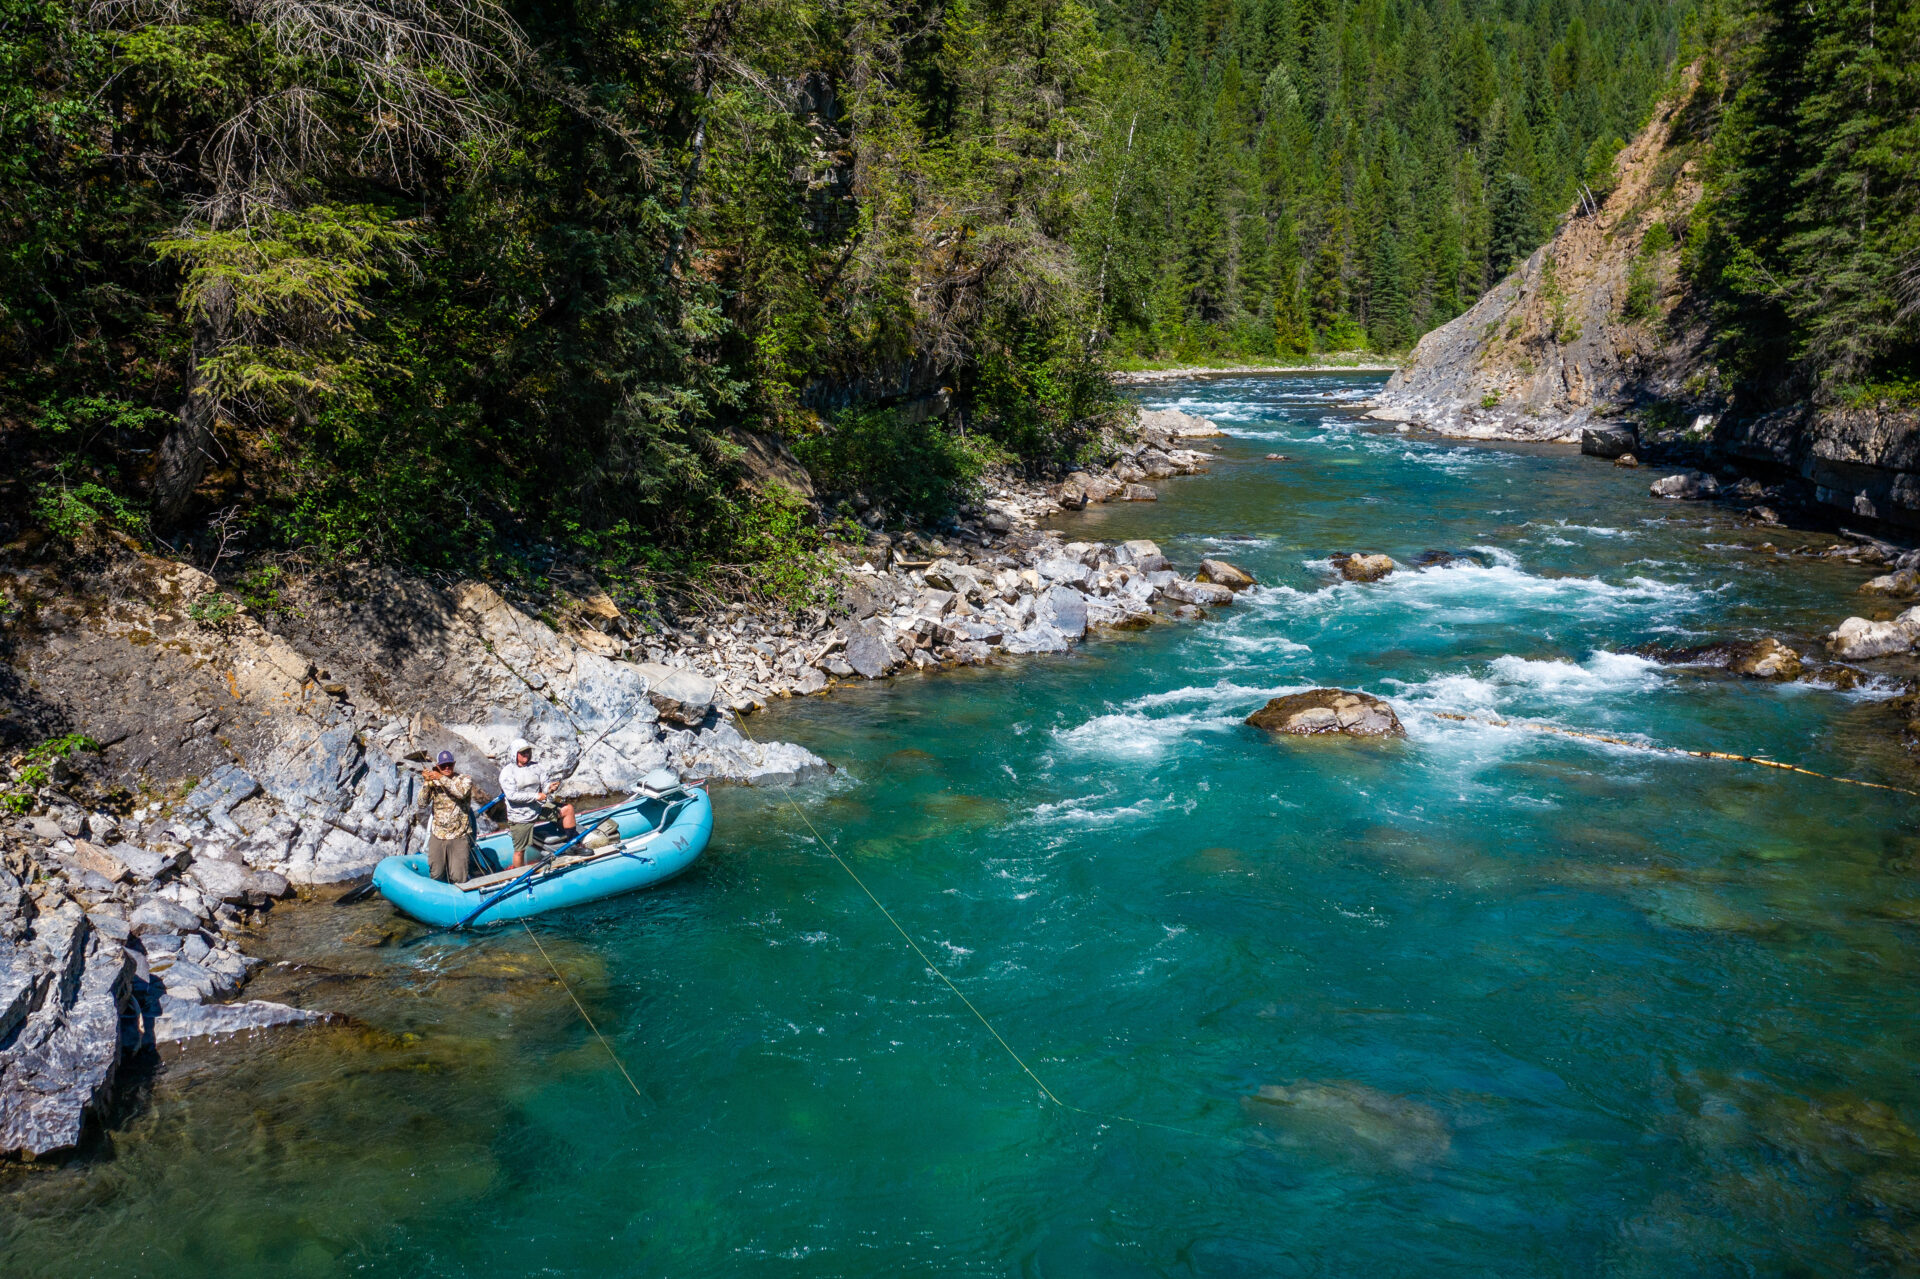 The East Kootenays area is often referred to as having some of the best dry fly-fishing opportunities in the entire province. Photo by Chase White.